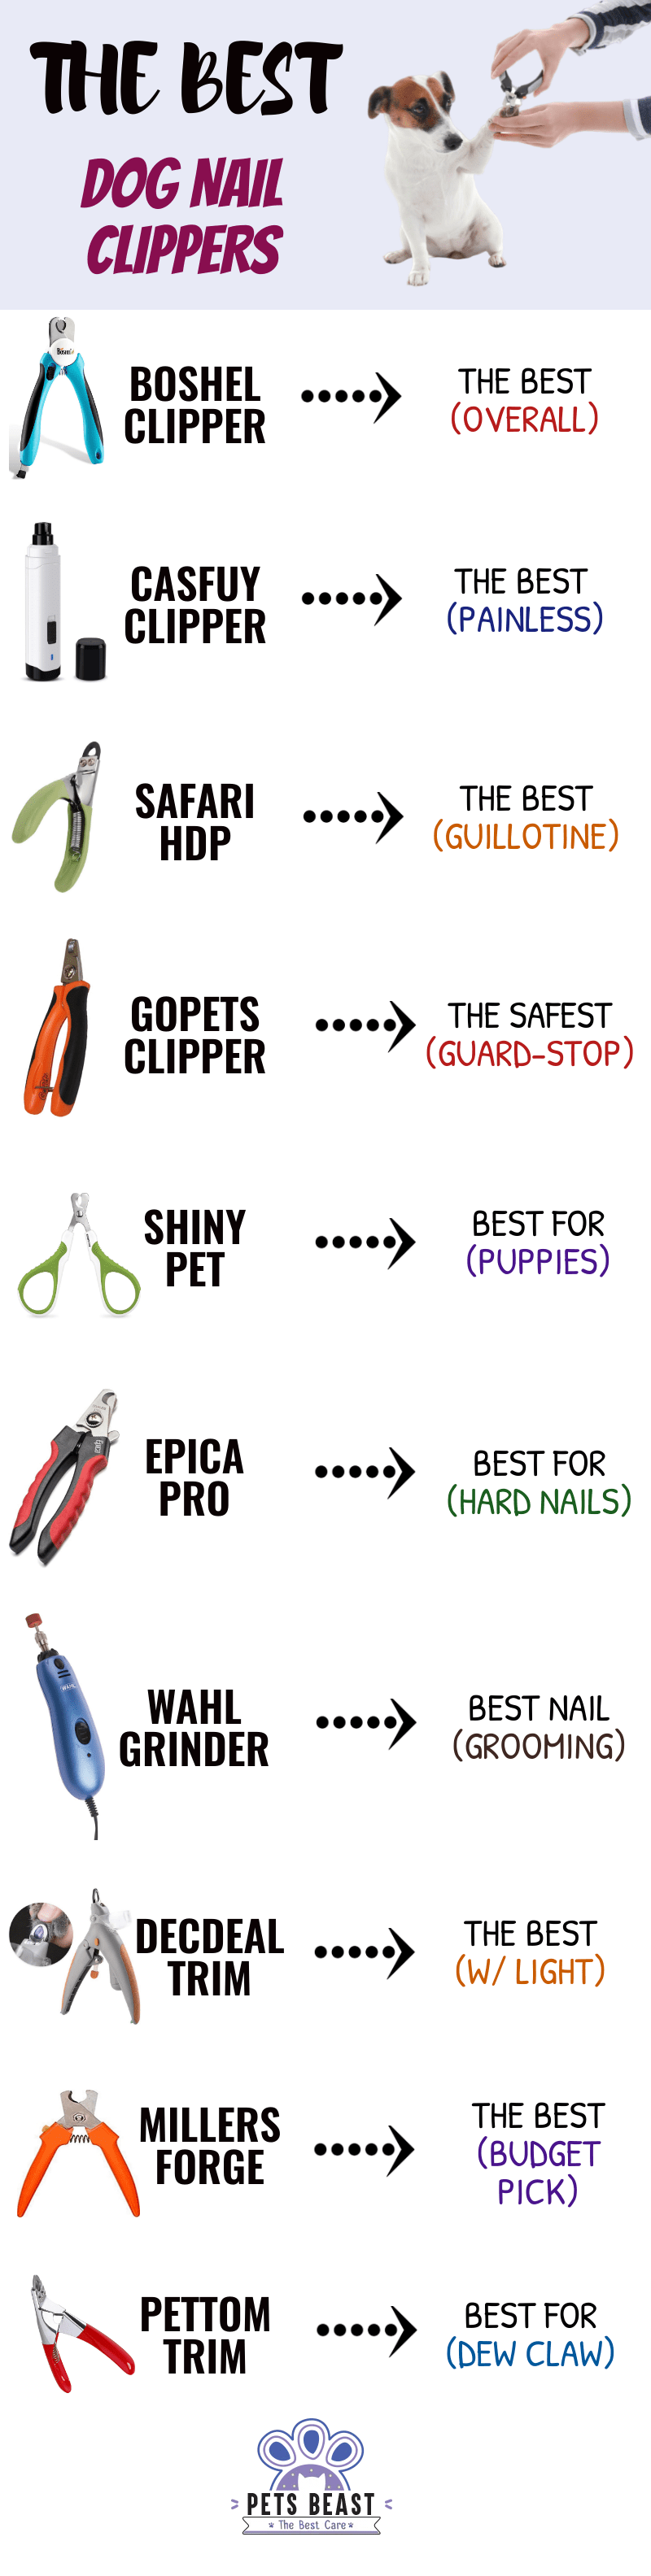 Best Dog Nail Clippers